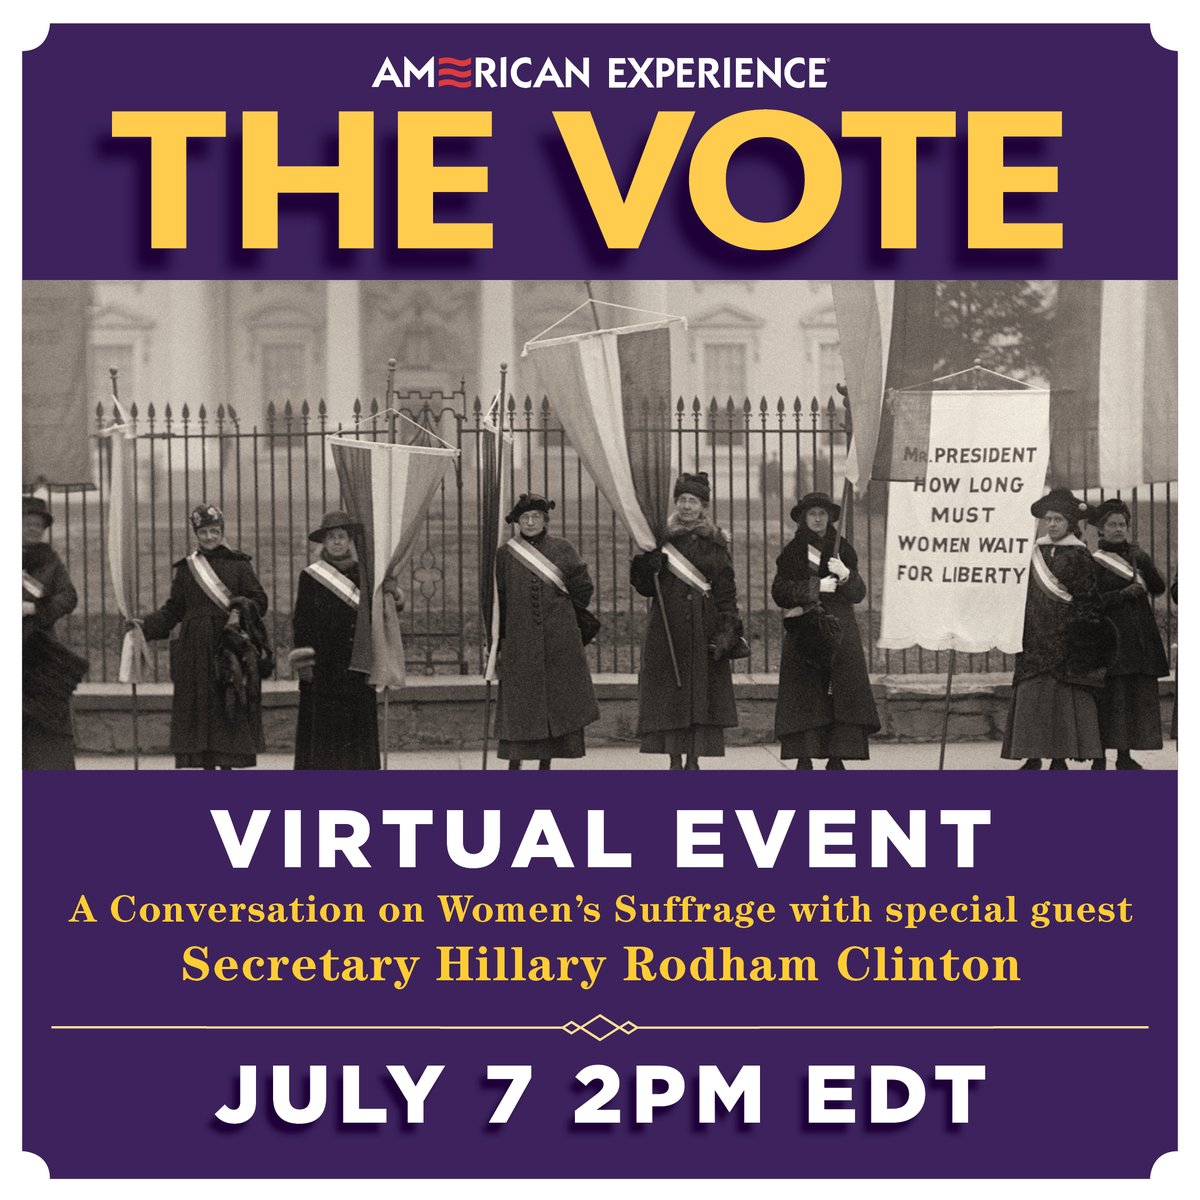 Starting shortly:   To celebrate the release of @AmExperiencePBS's #TheVotePBS, I'll be joining a conversation with historians, writers, and filmmakers about lessons for 2020 we can draw from the movement for women's suffrage.   Join us at 2pm ET: https://t.co/YUlVfPQ18K https://t.co/bJ9llD0x93